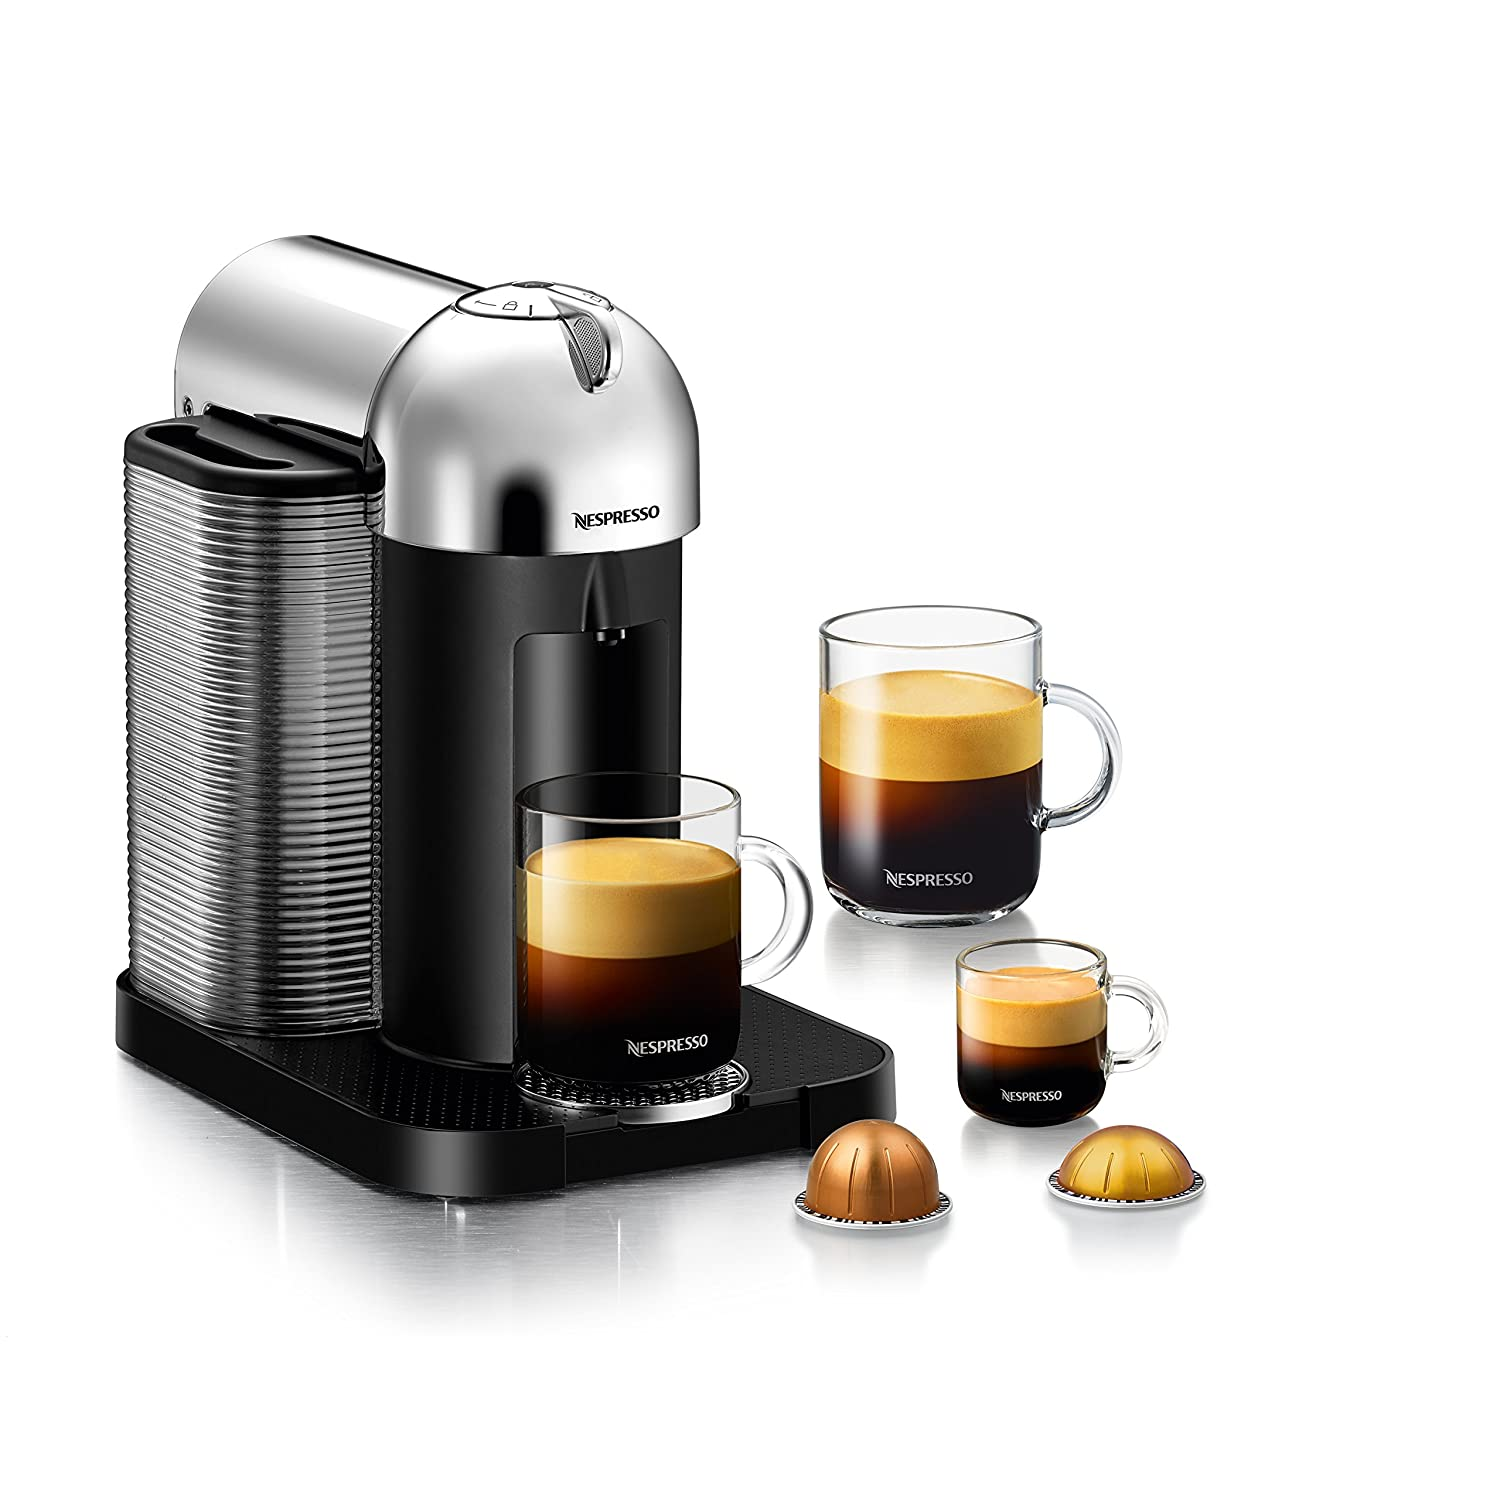 $149.99 (was $249.99)Nespresso VertuoLine by Breville, Chrome